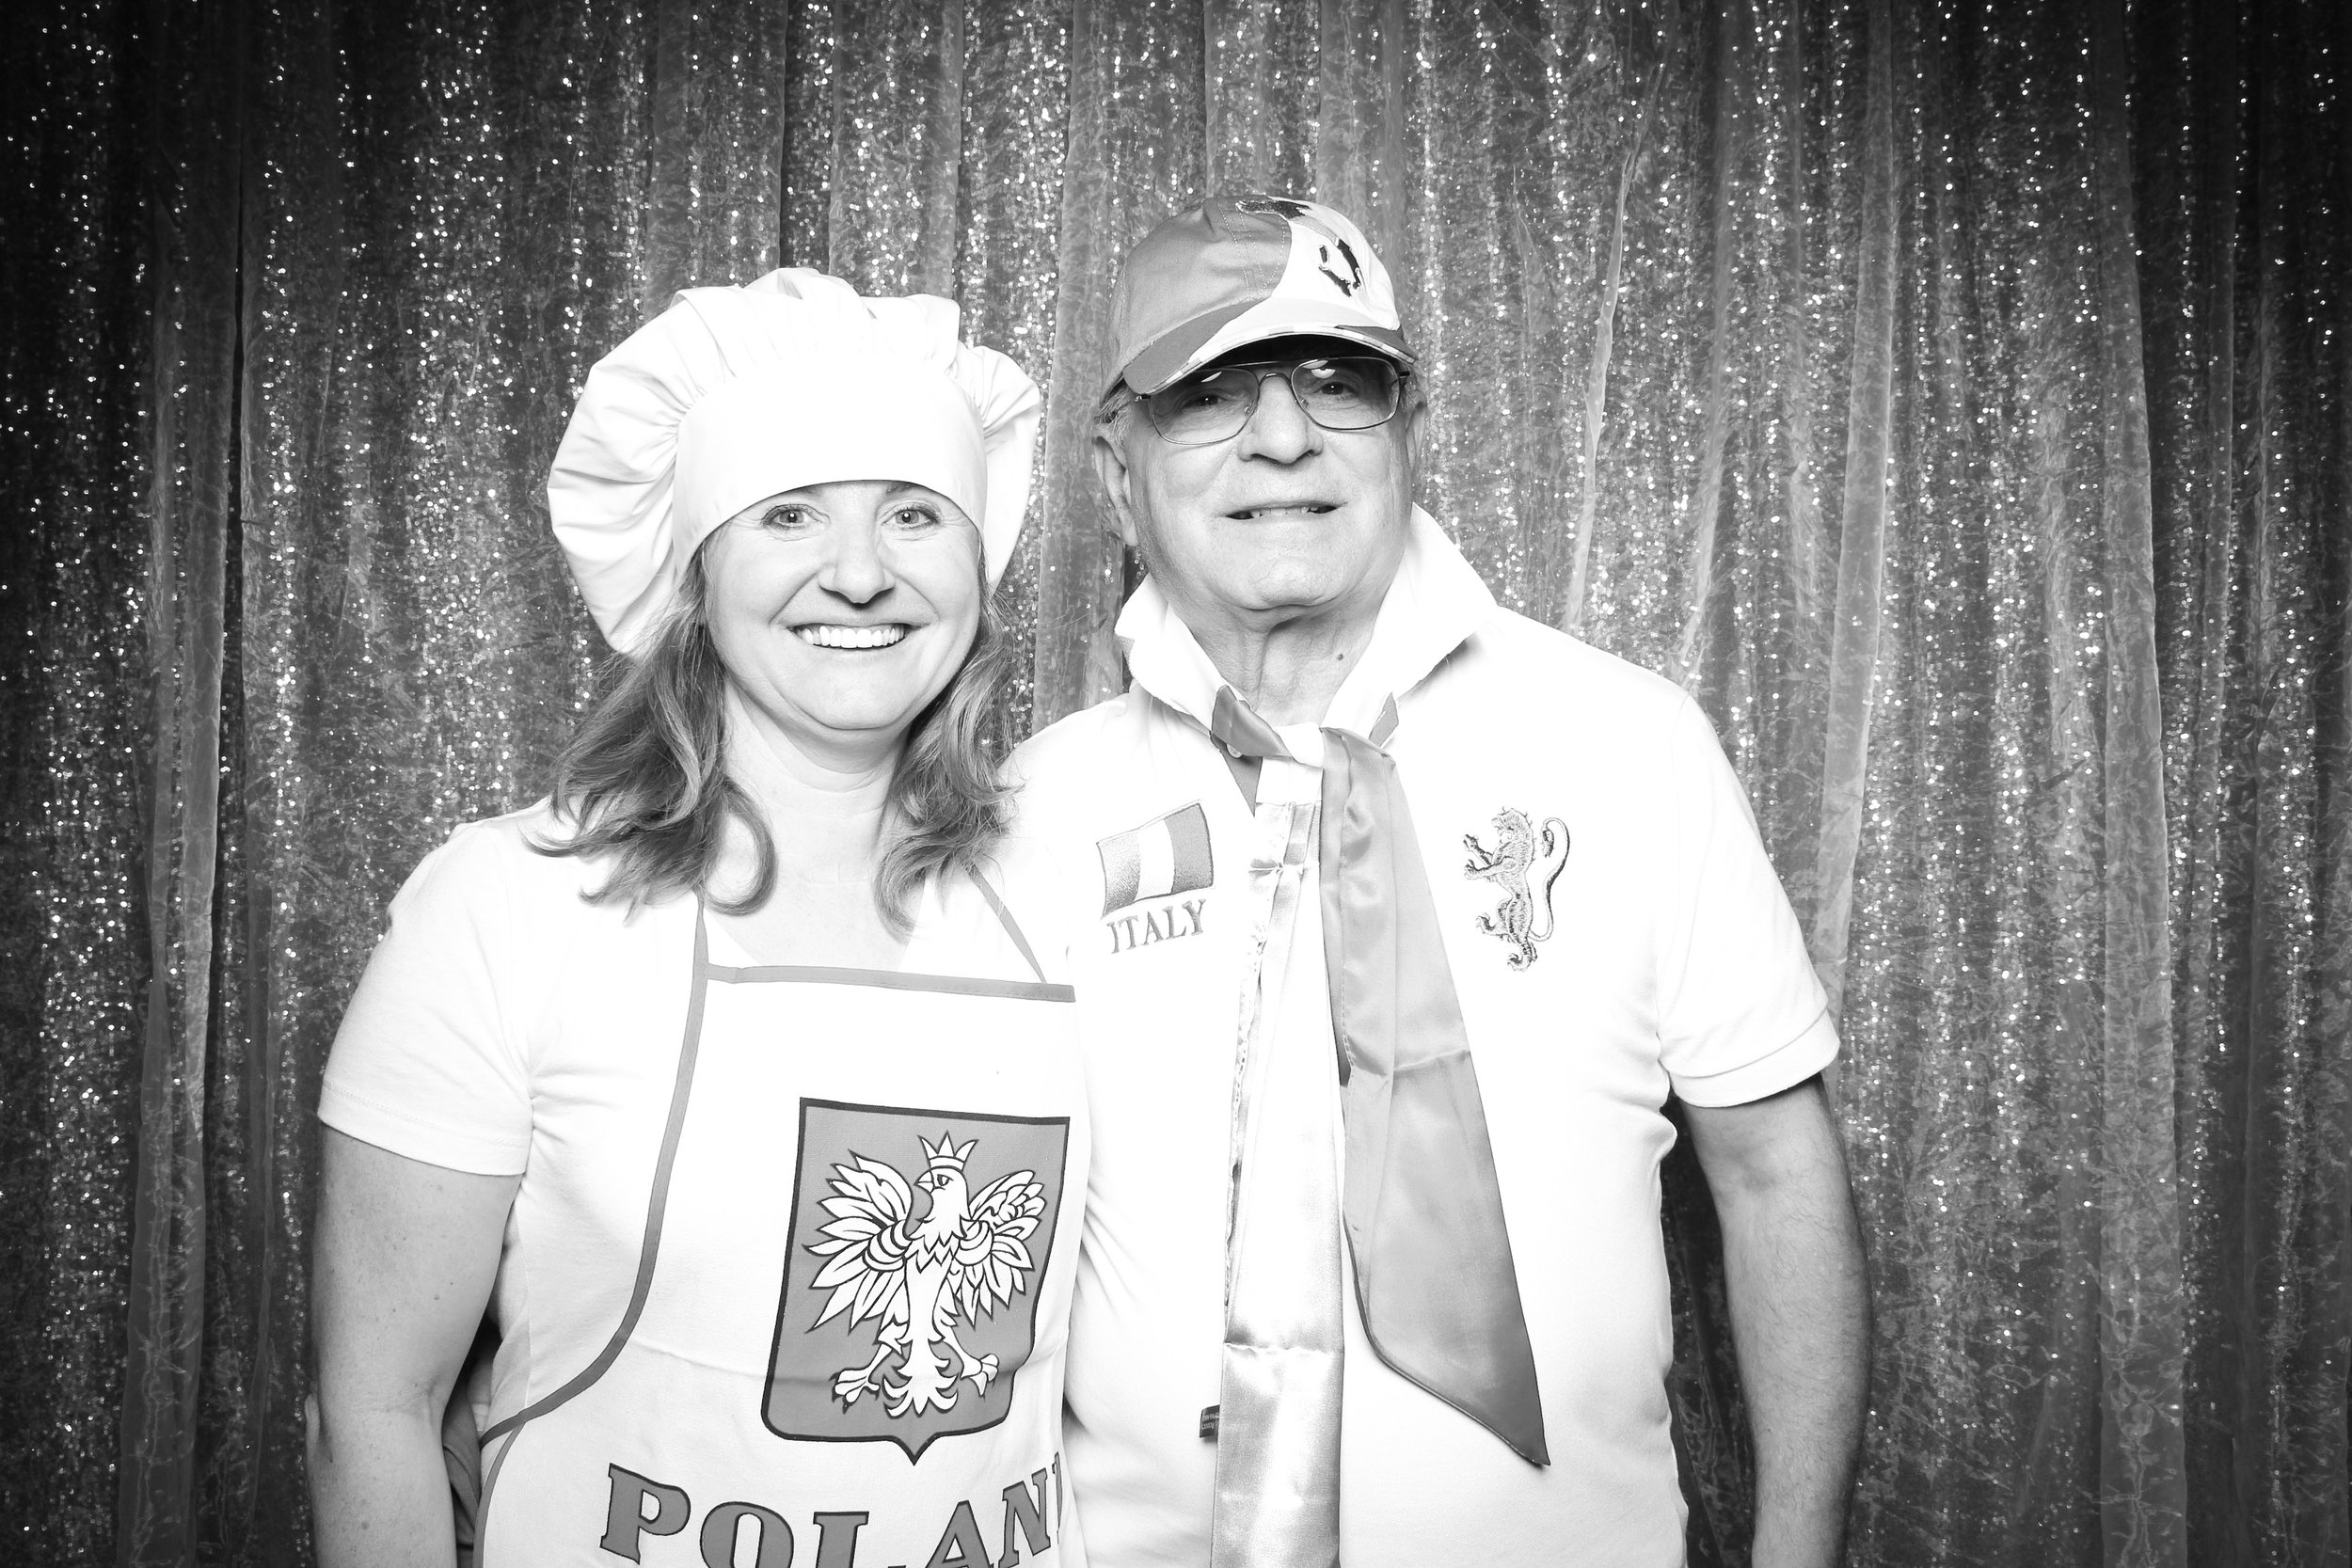 Chicago_Vintage_Wedding_Photobooth_Downers_Grove_40.jpg